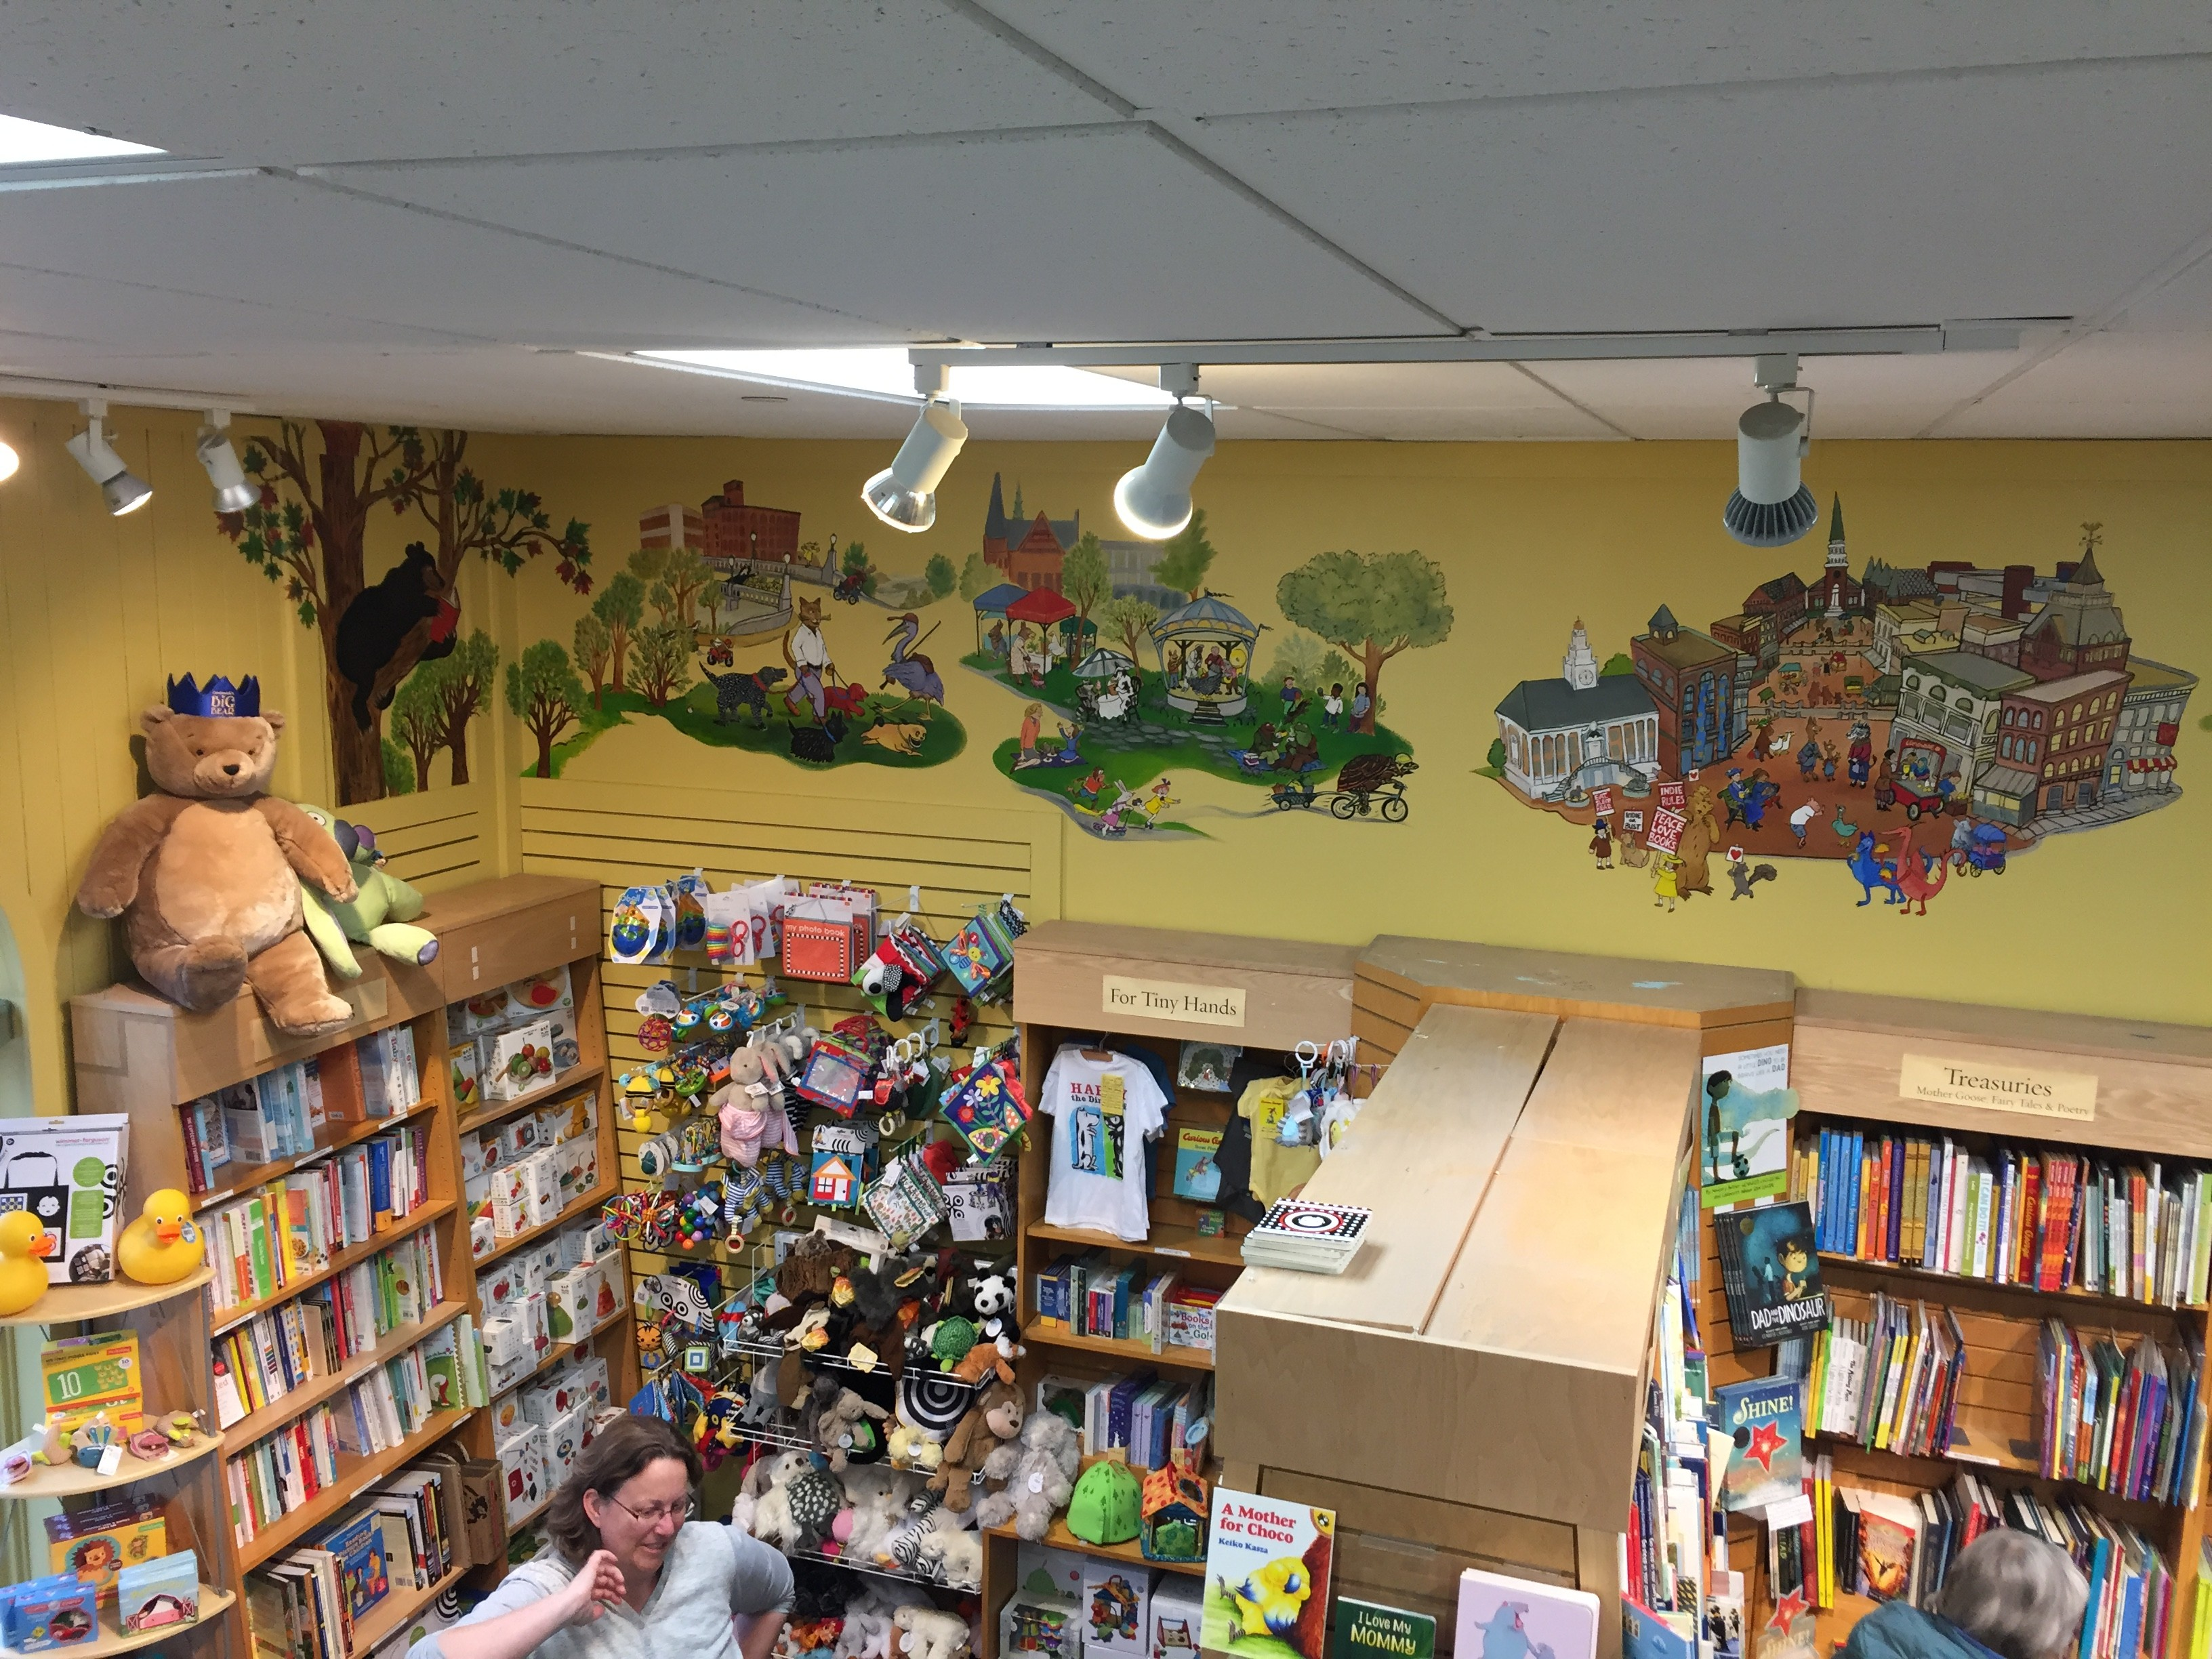 33e4fadb1 click to enlarge Mural by Kristin Richland at Phoenix Books Burlington  (detail) - MARGOT HARRISON